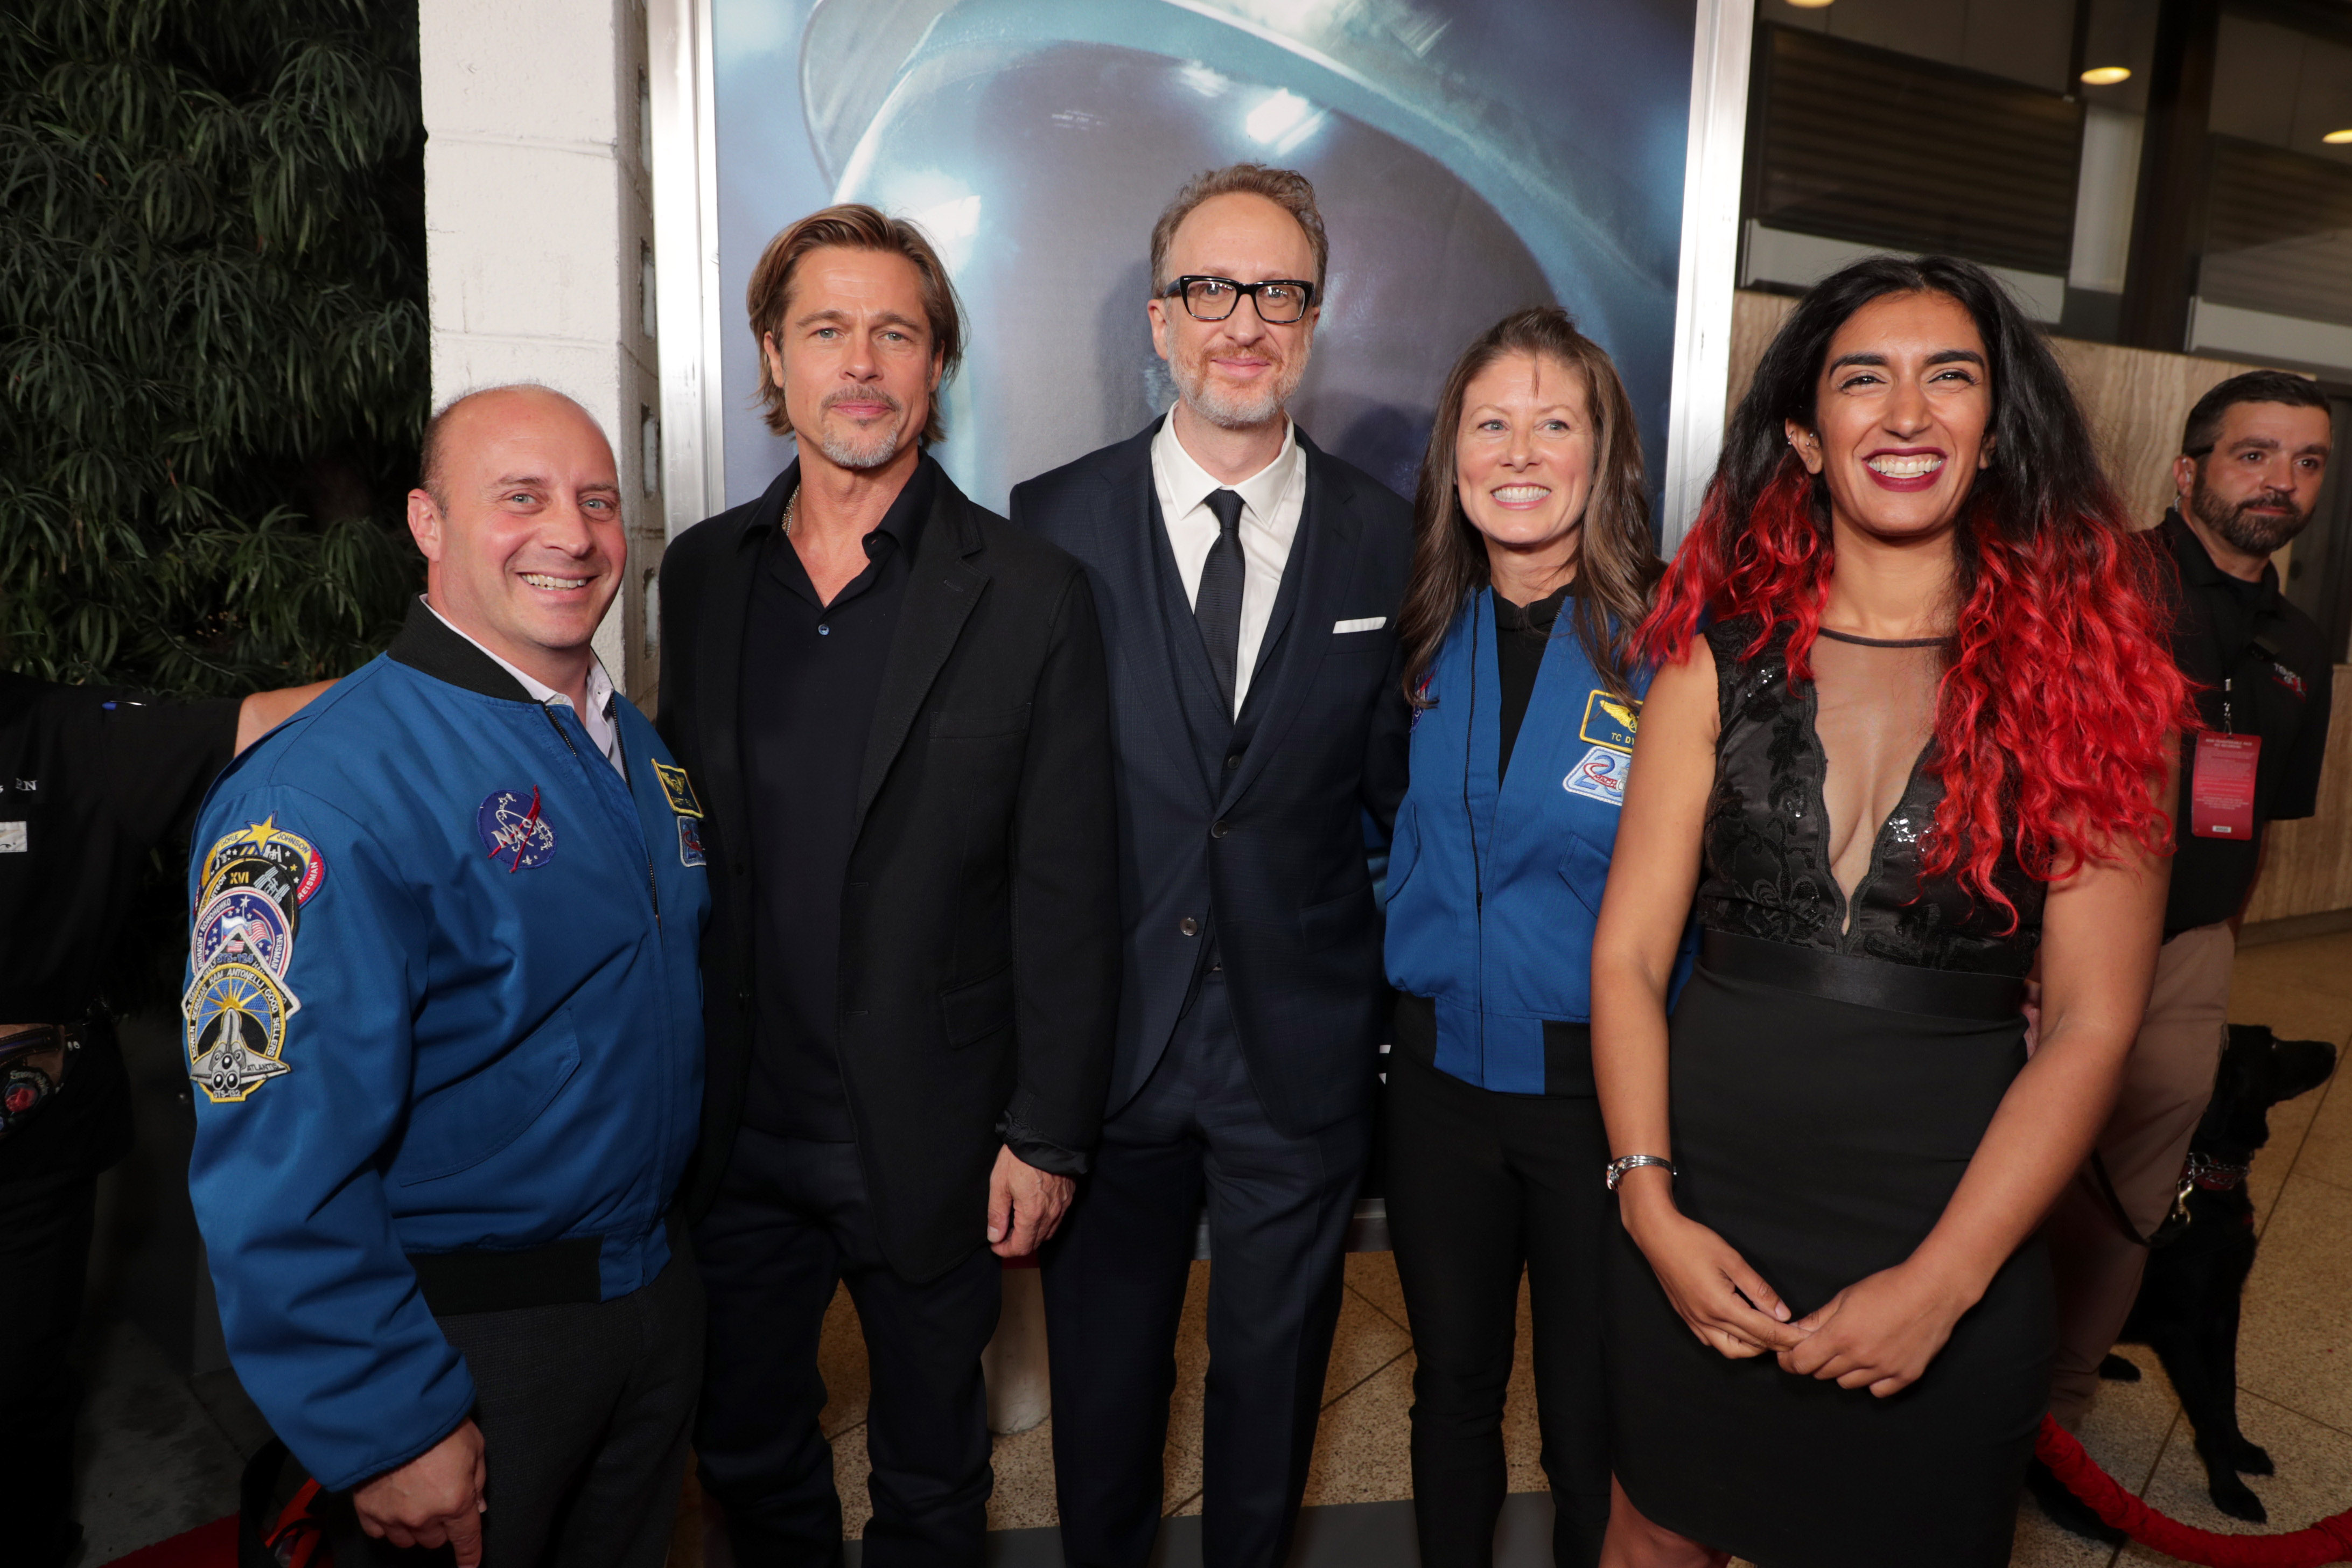 VIPs arrive at Ad Astra Hollywood premiere